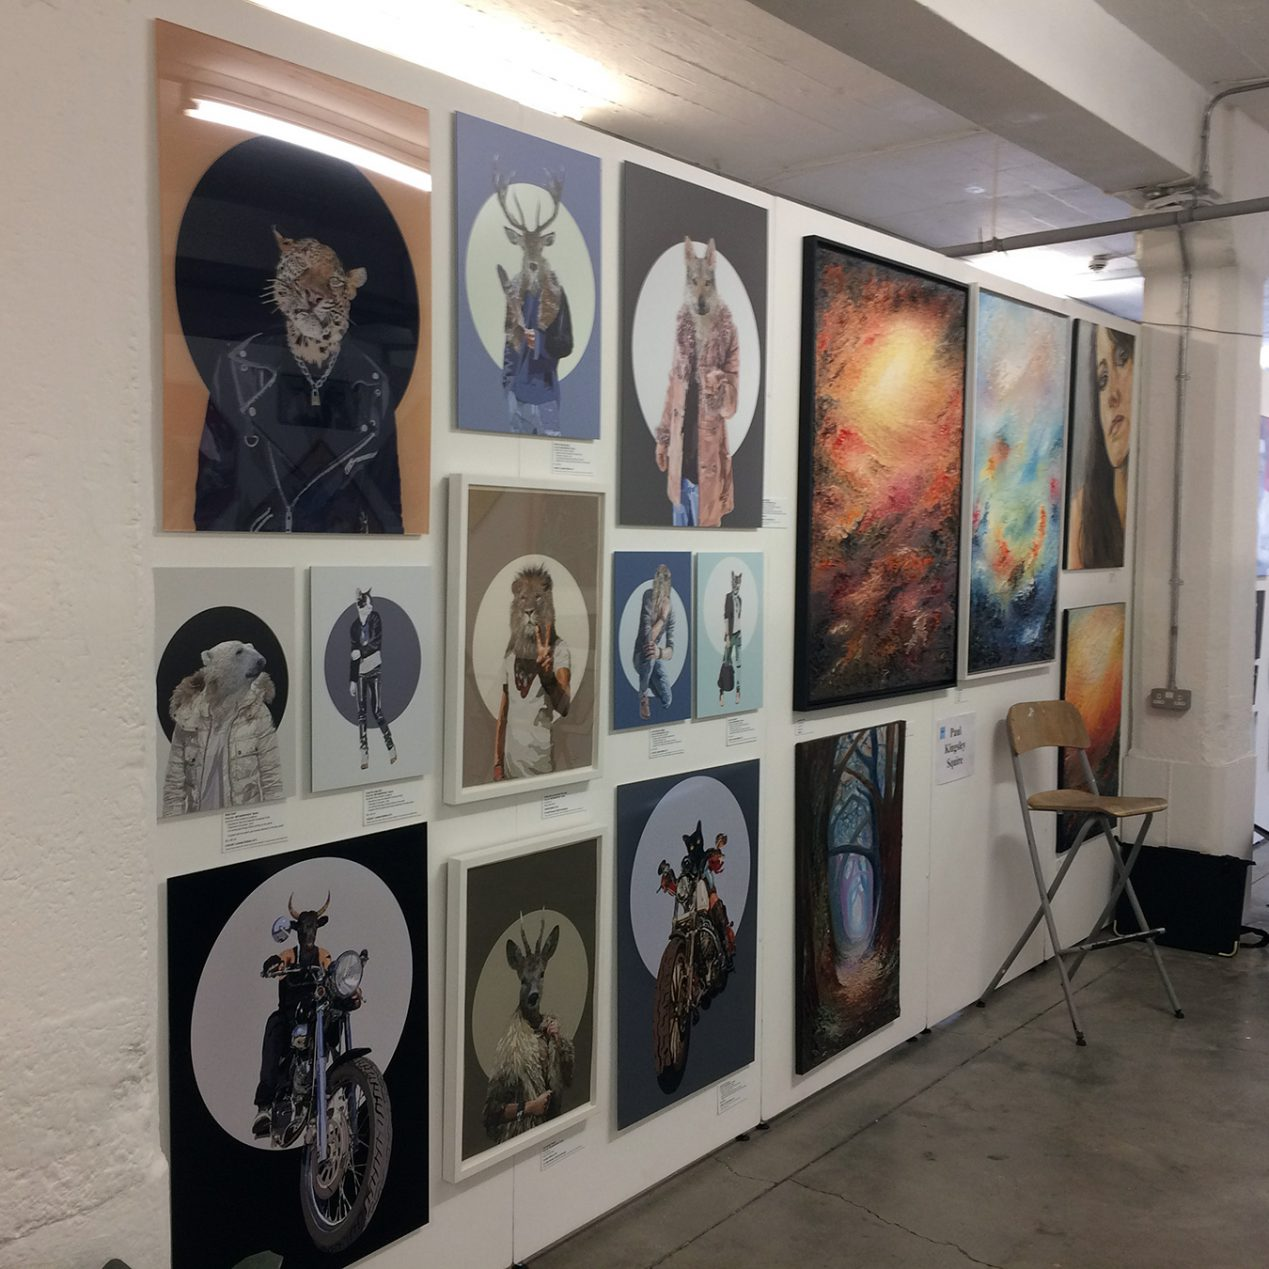 Talented Art Fair 2017 - Truman Brewery, Brick Lane, London